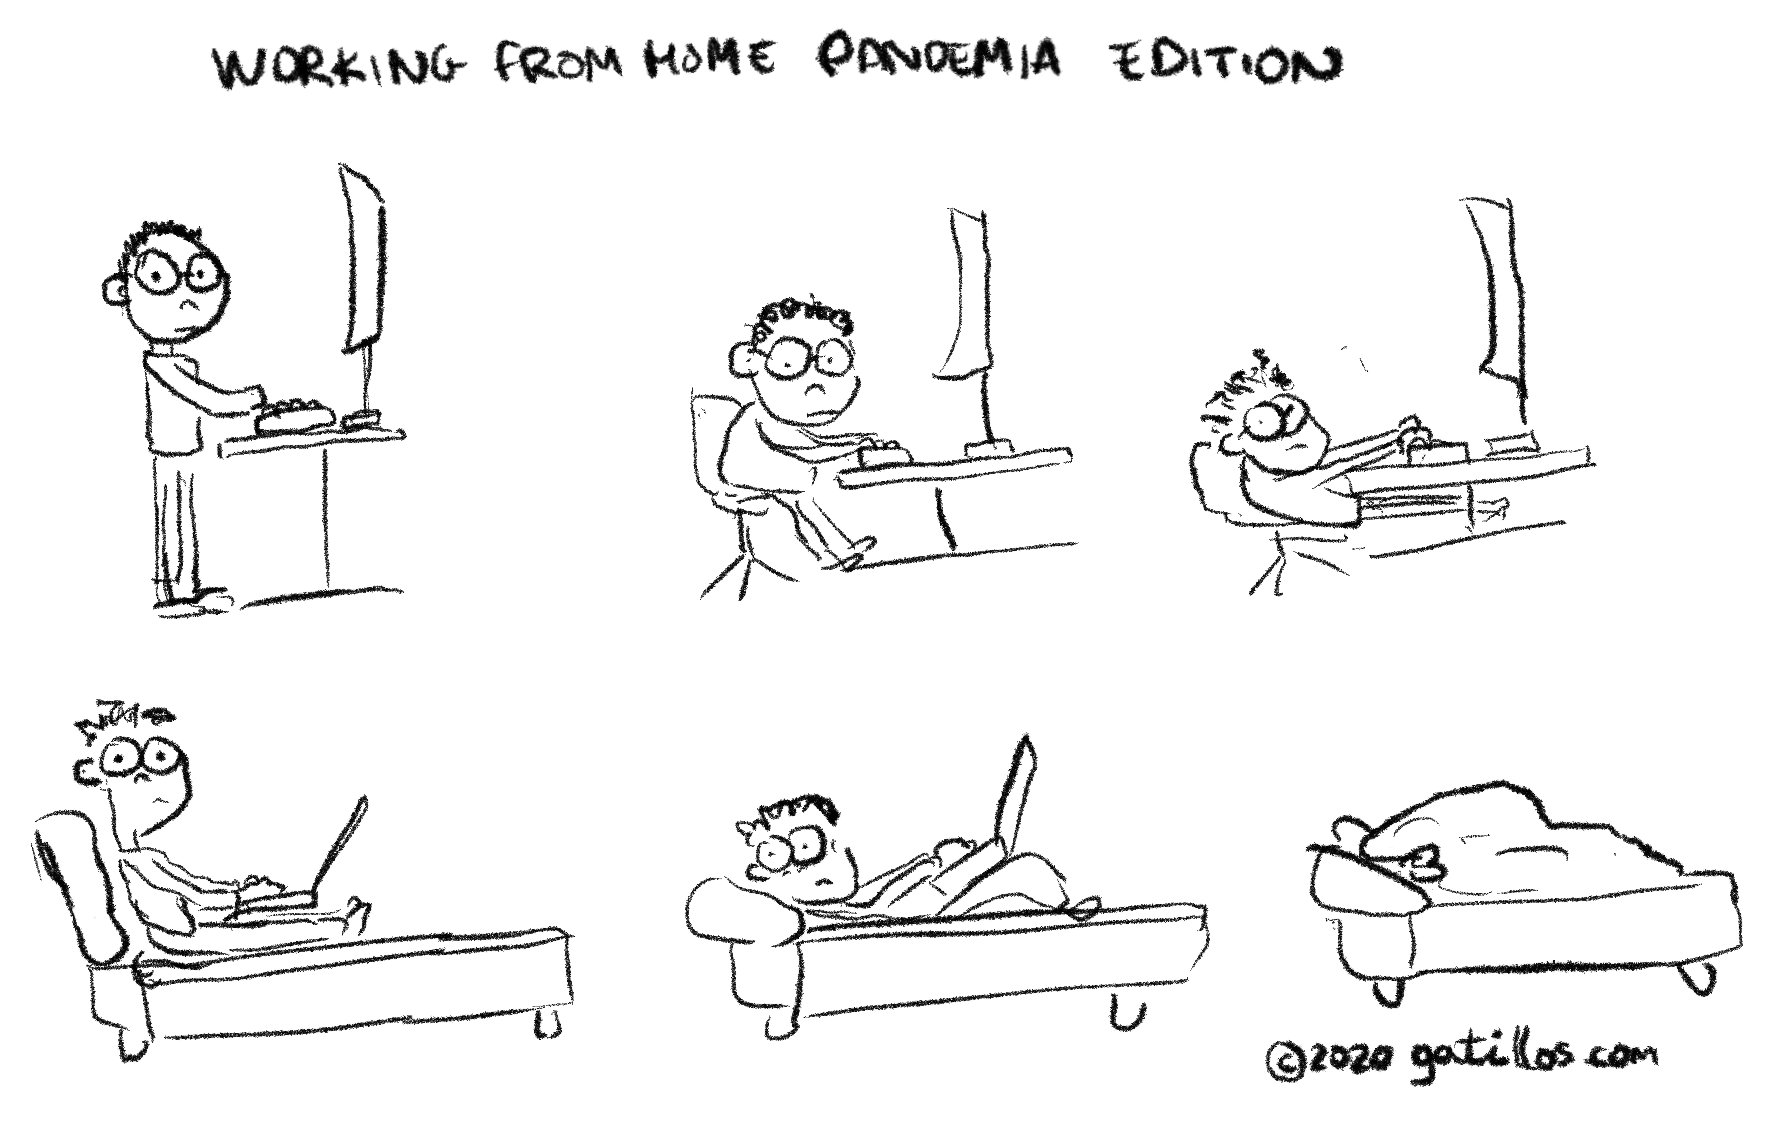 Working from home: Pandemia Edition